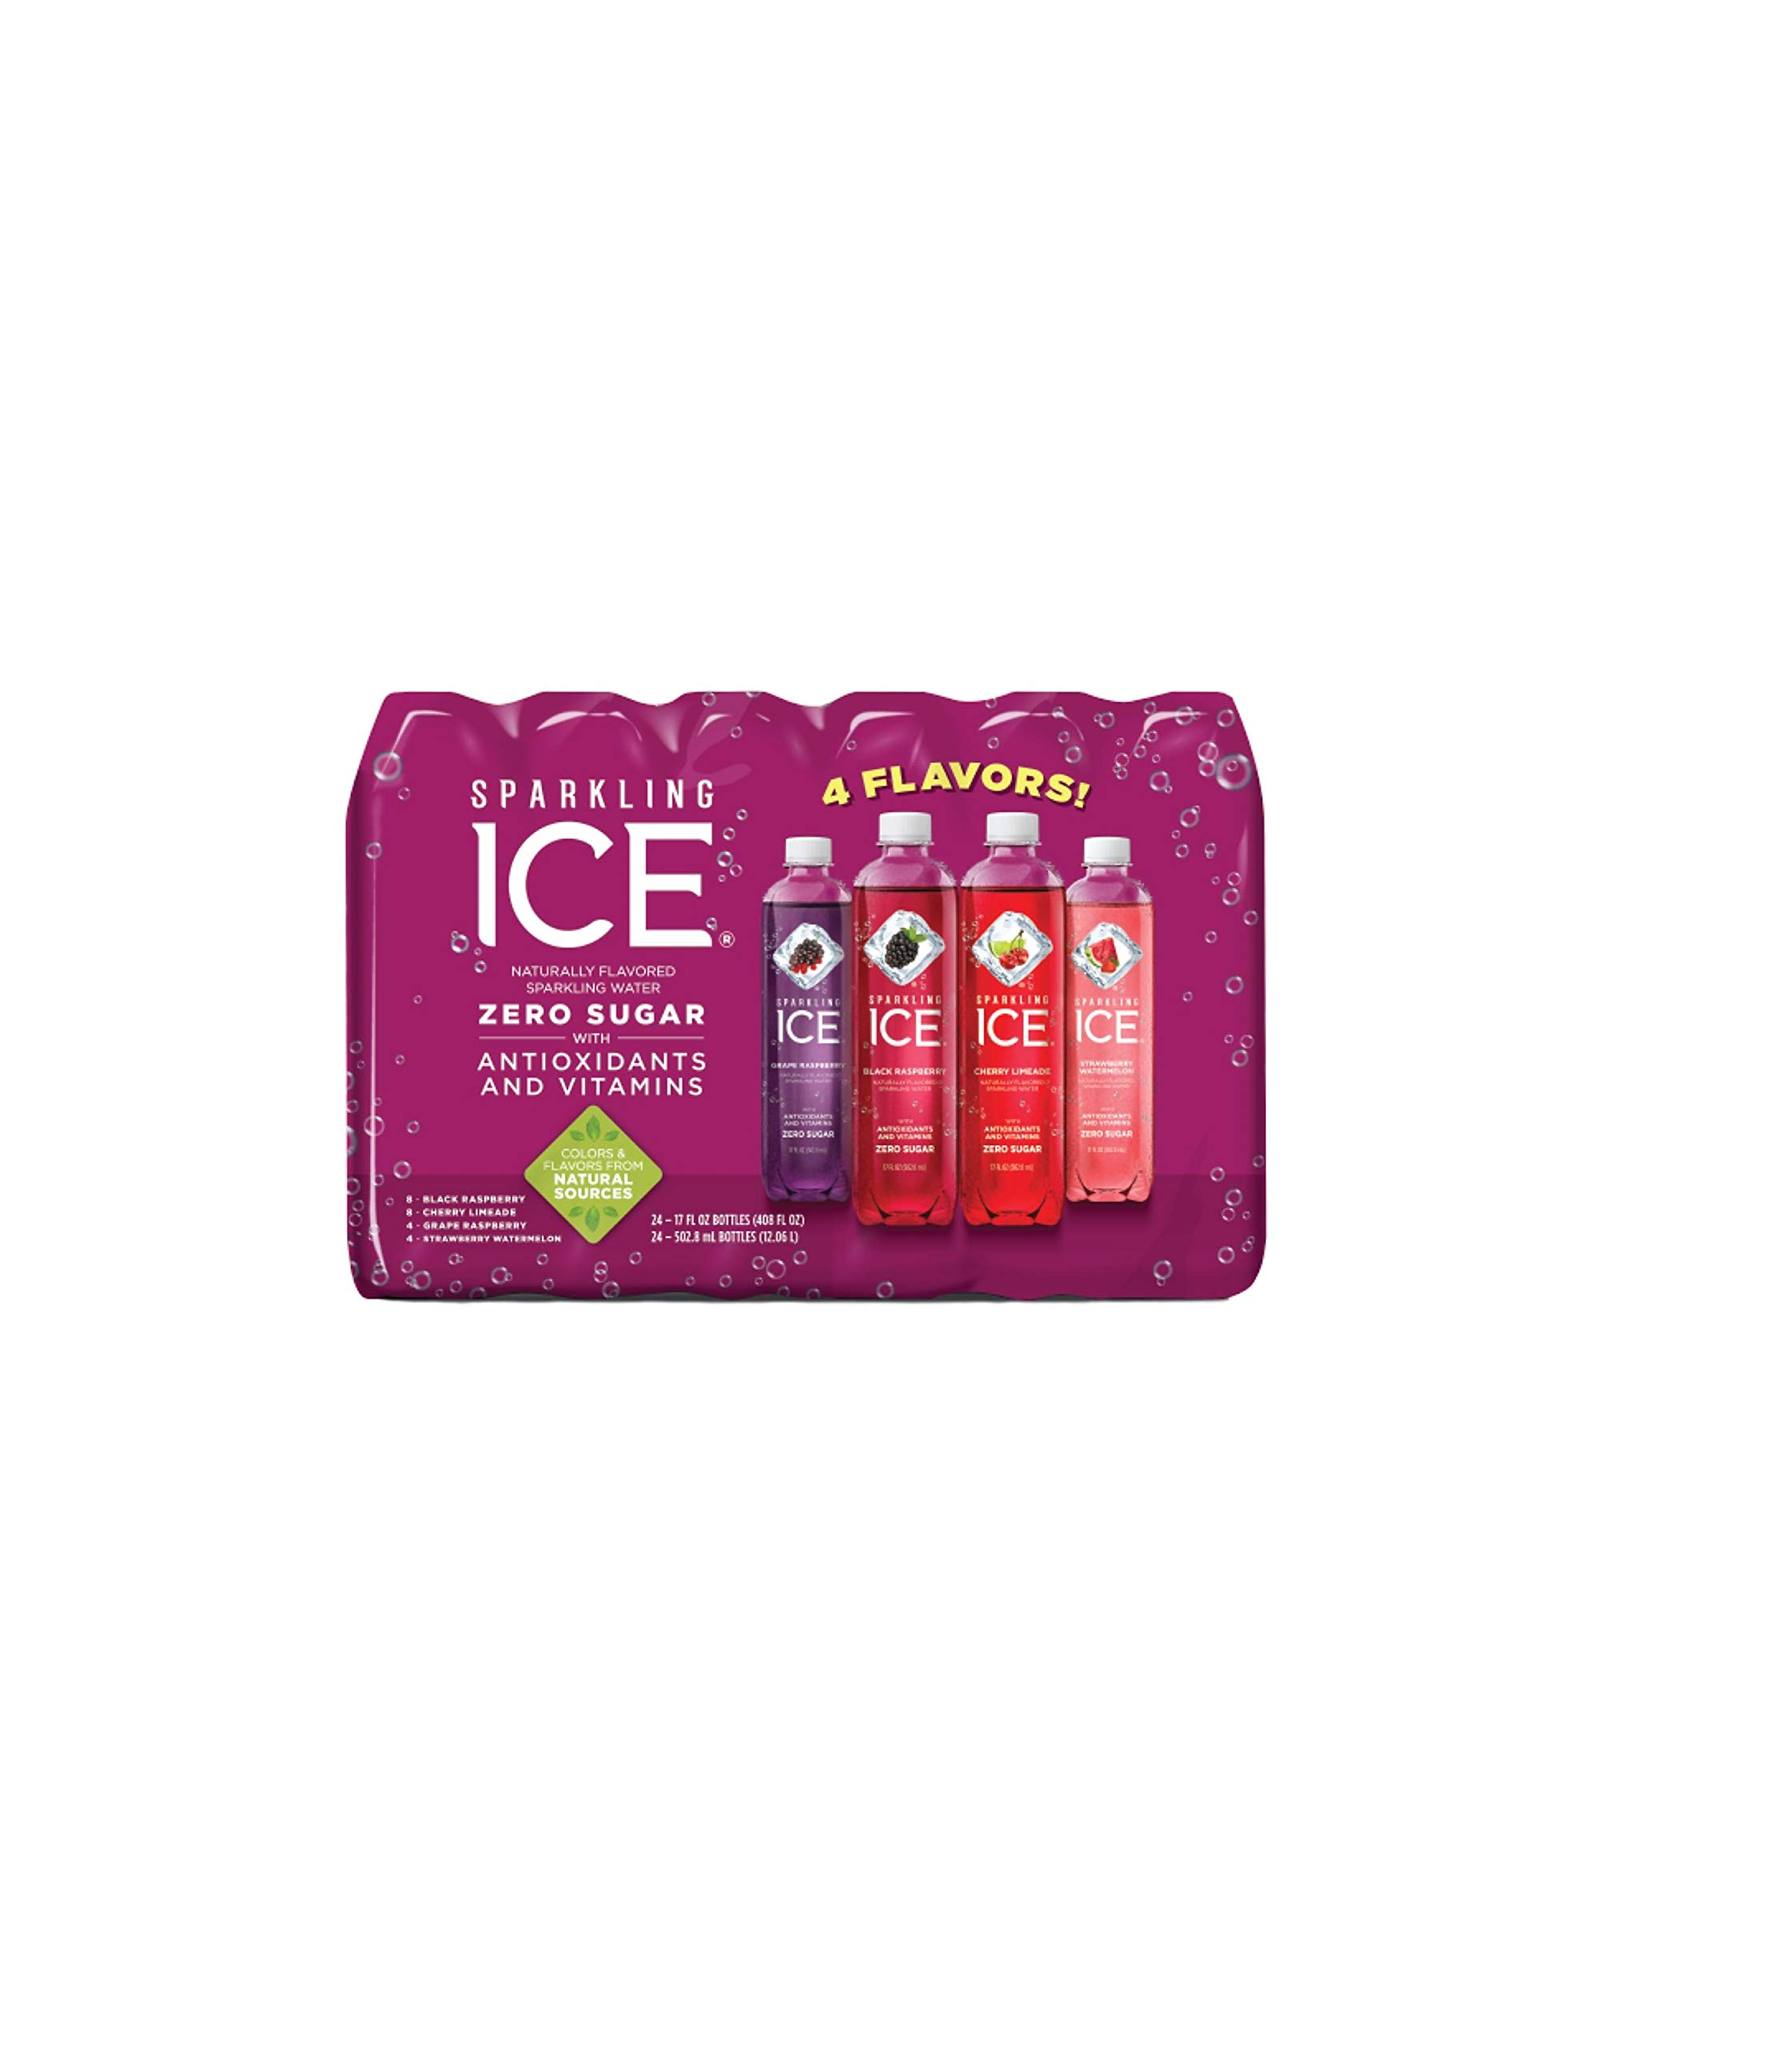 Sparkling Ice Very Berry Huge Variety Pack of 24 Bottles by Sparkling ICE